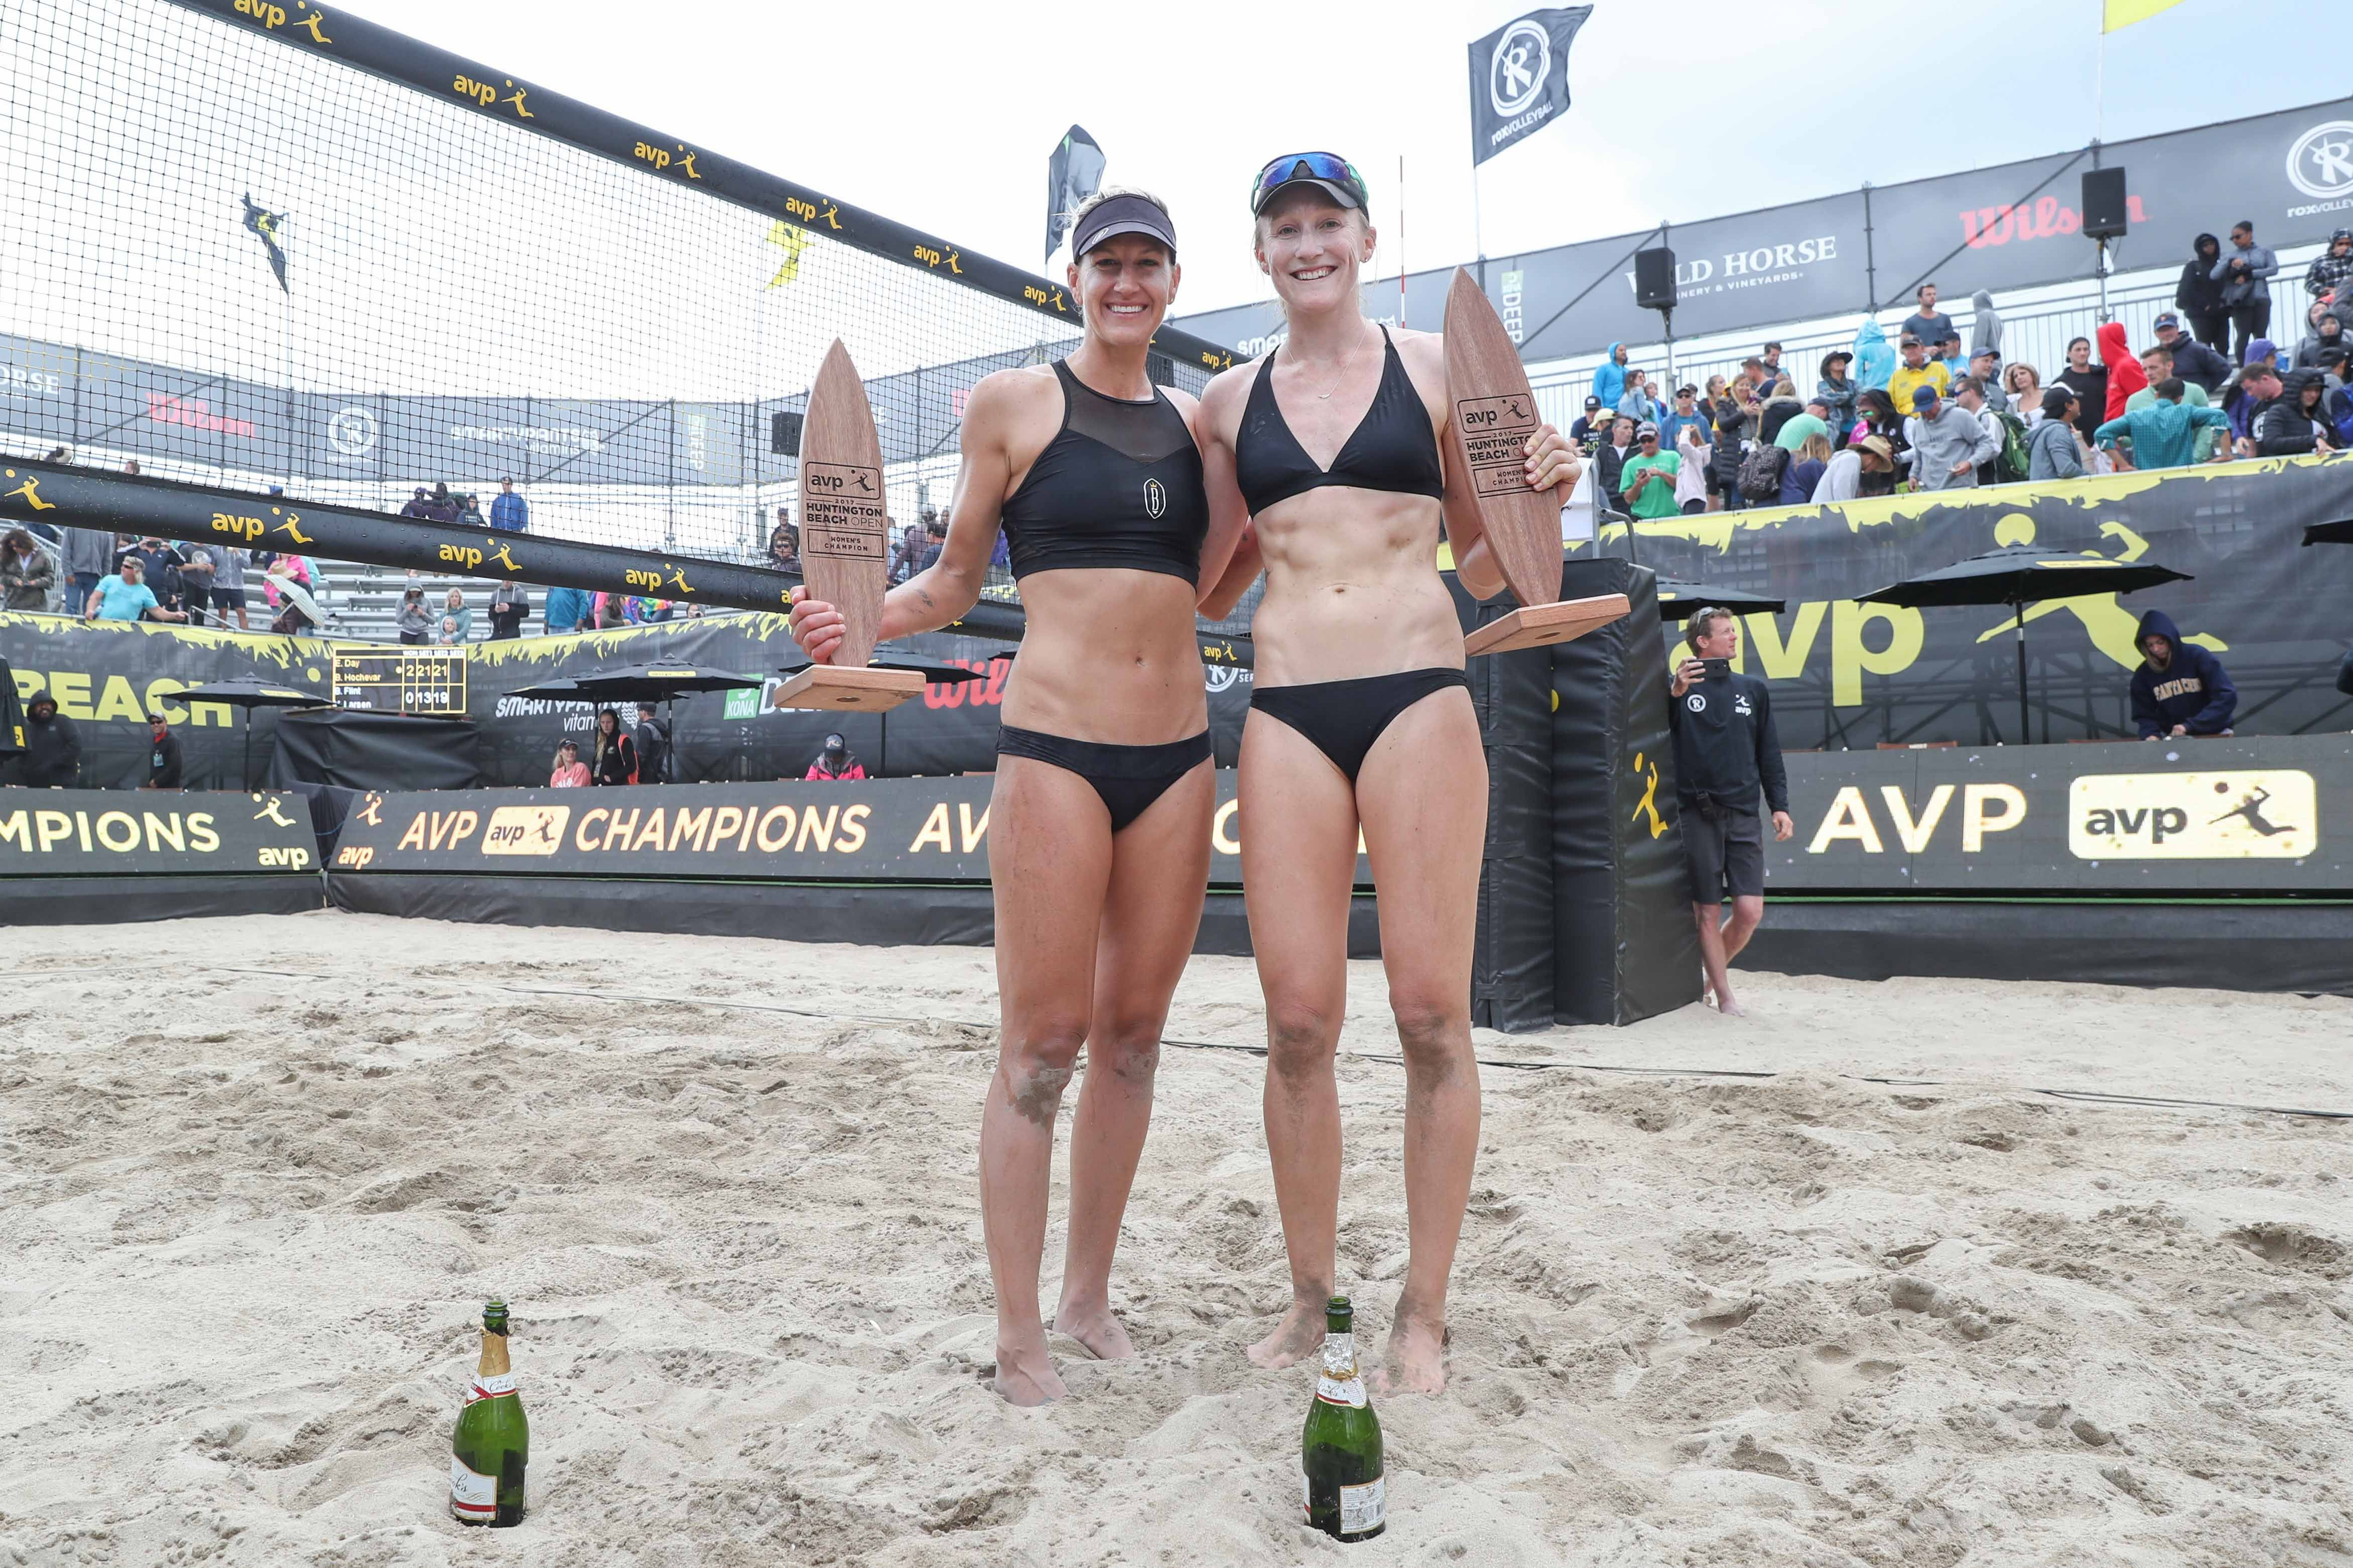 Avp Huntington Beach Open 2017 Photo Gallery Avp Beach Volleyball Huntington Beach Beach Volleyball Photo